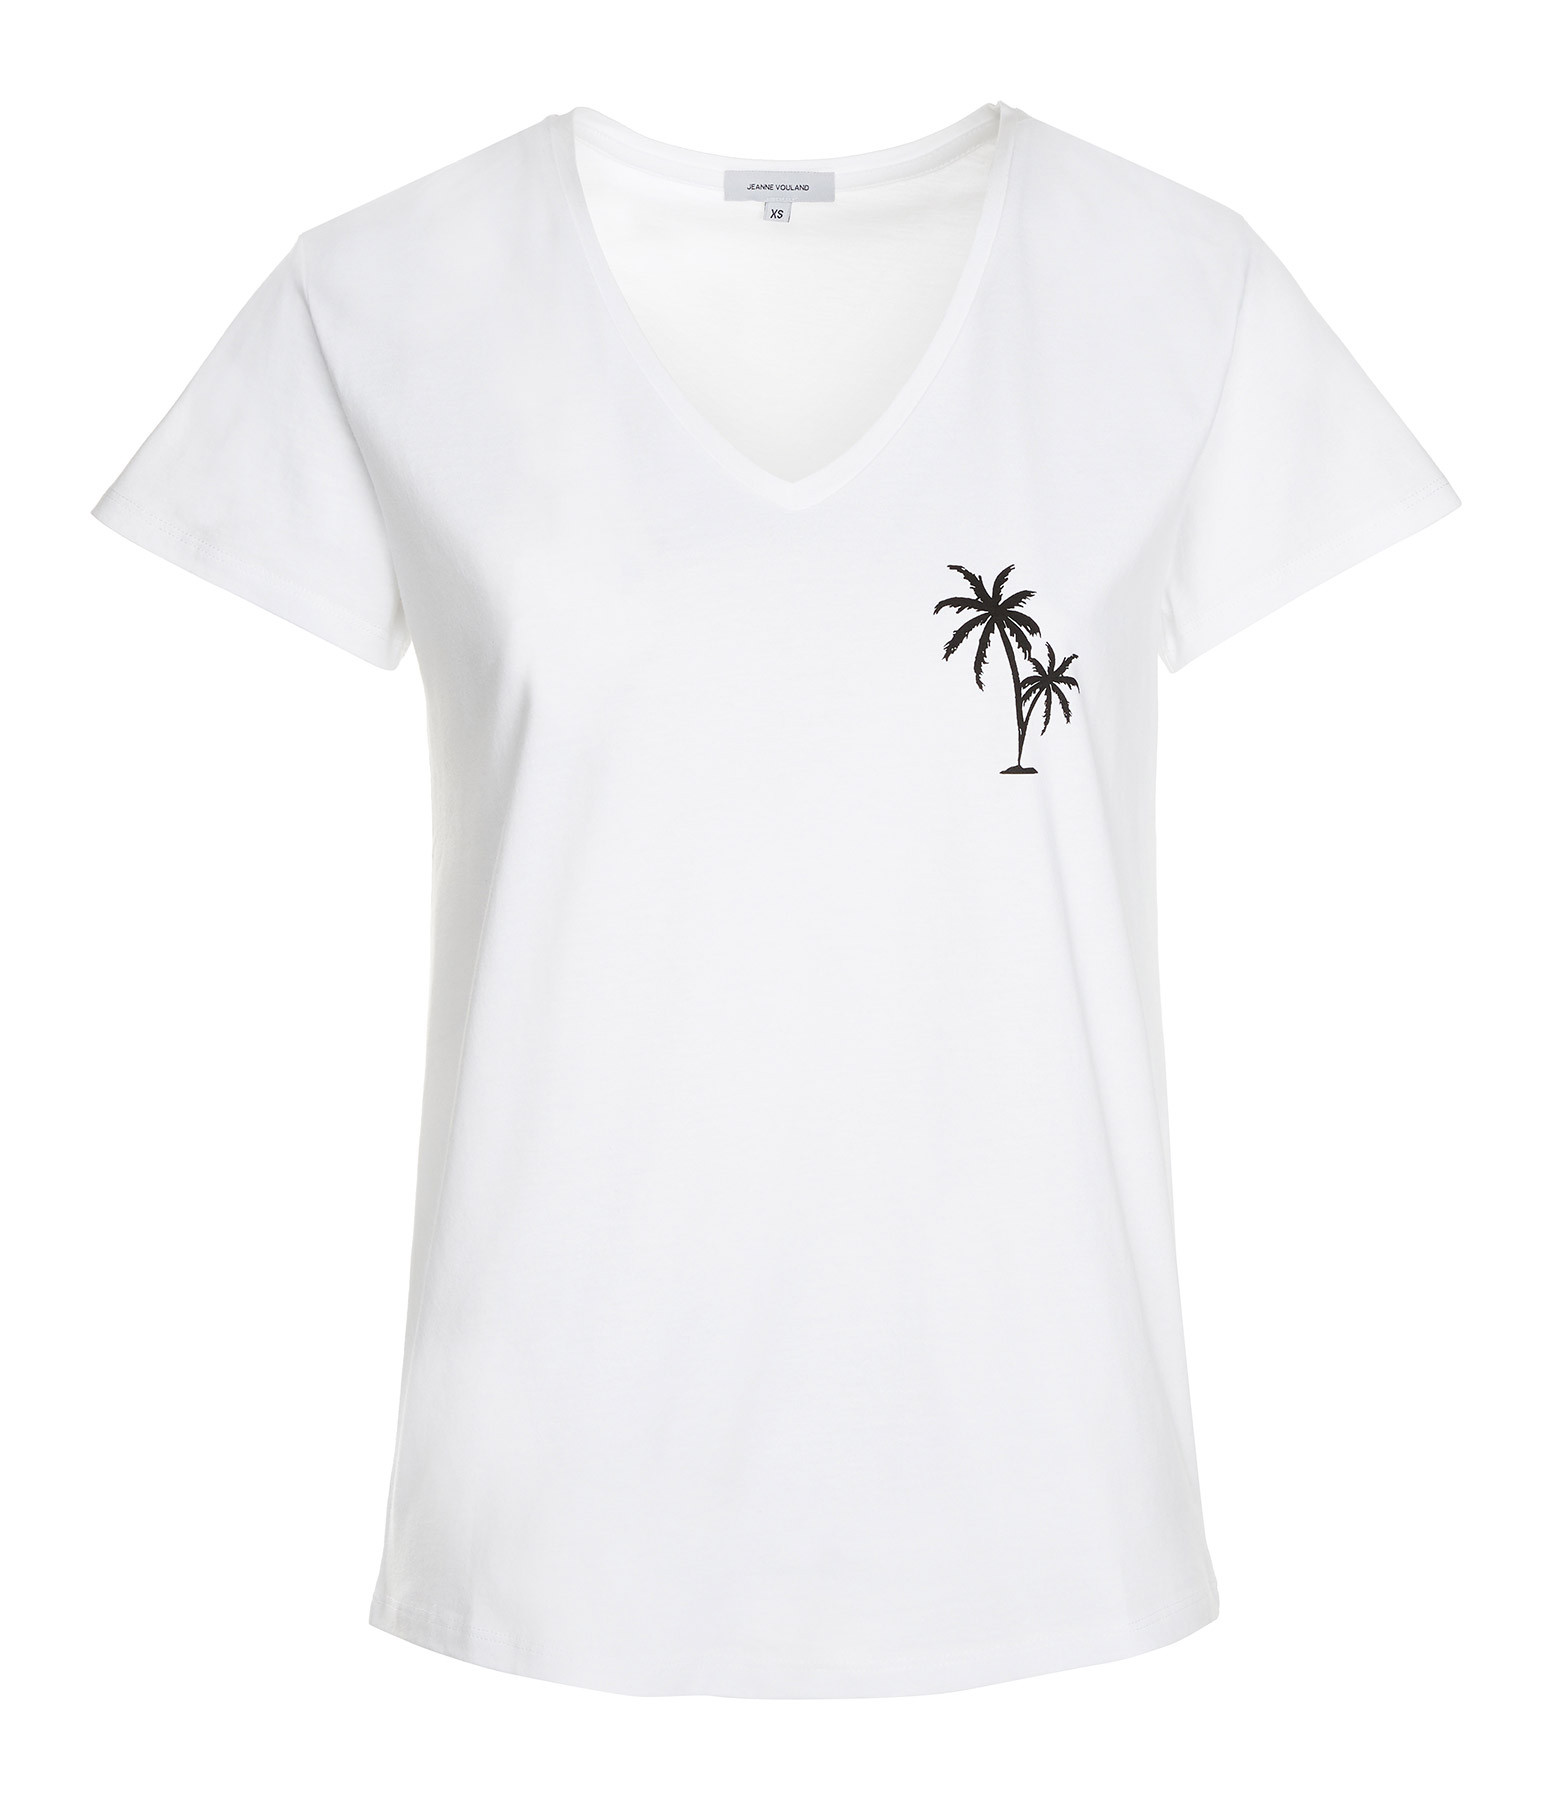 JEANNE VOULAND - Tee-Shirt Darcy Palm Blanc